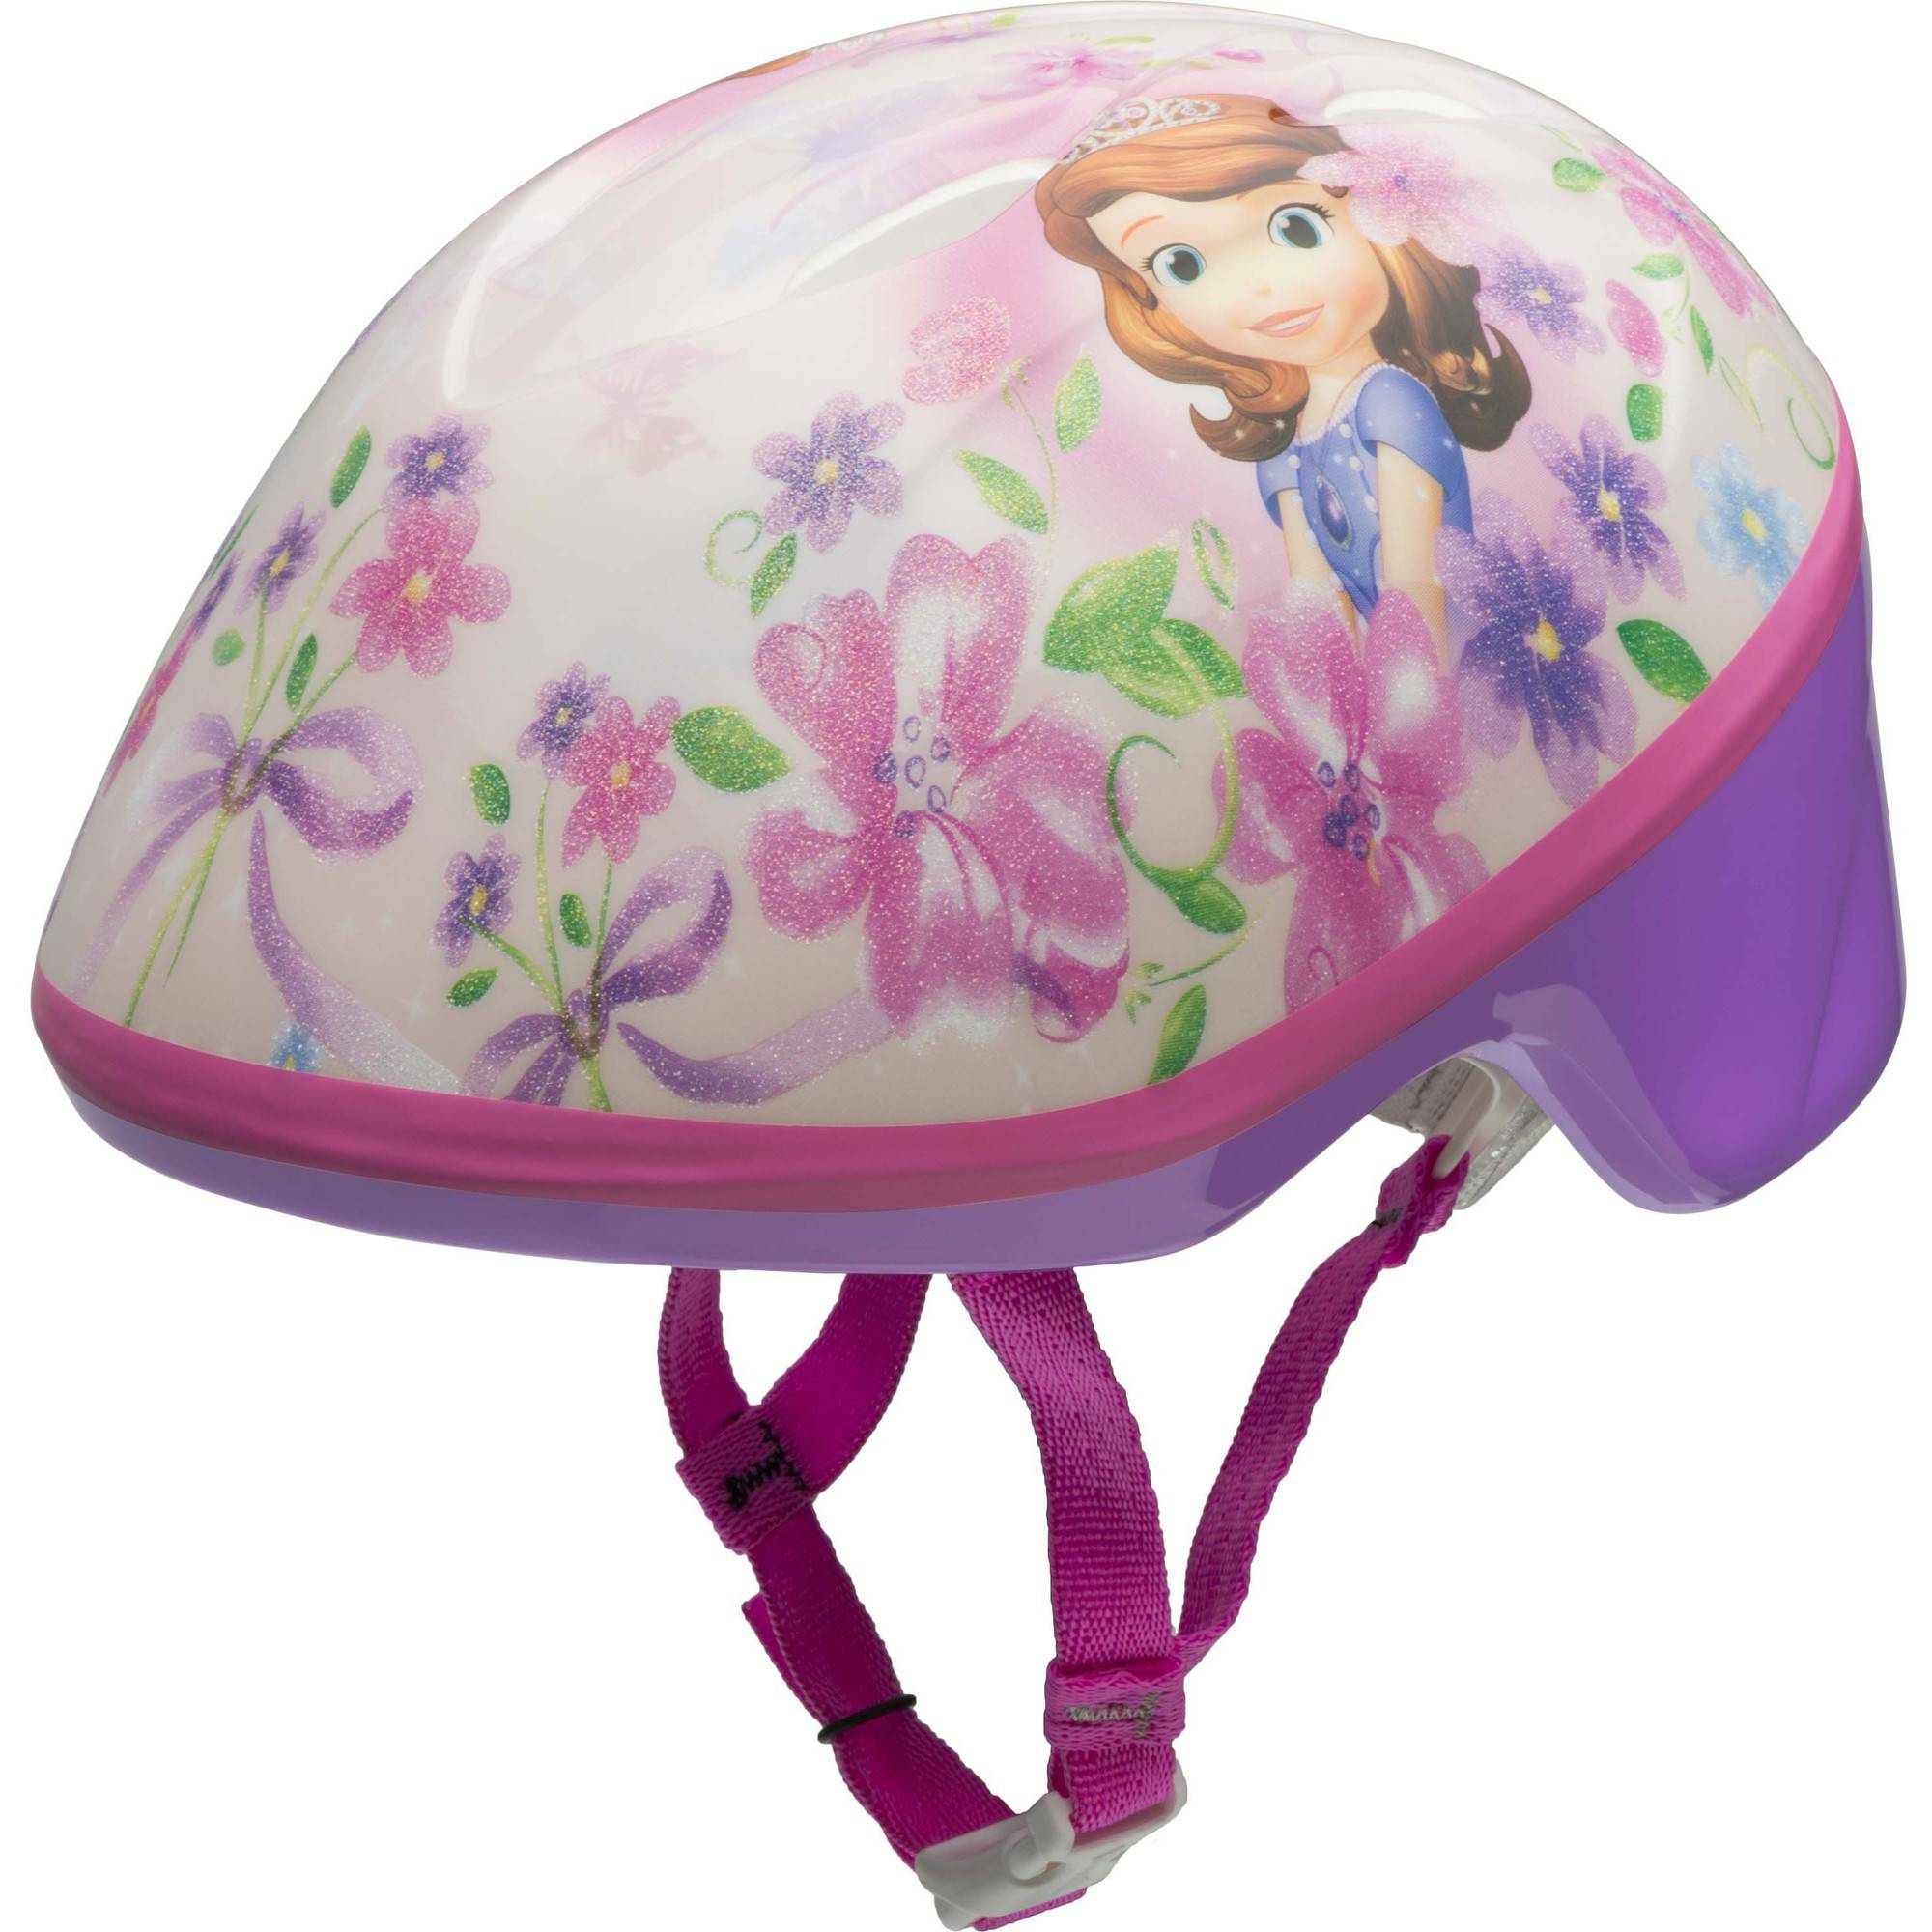 Bell Sports Sophia the First Toddler Helmet, Pink and White